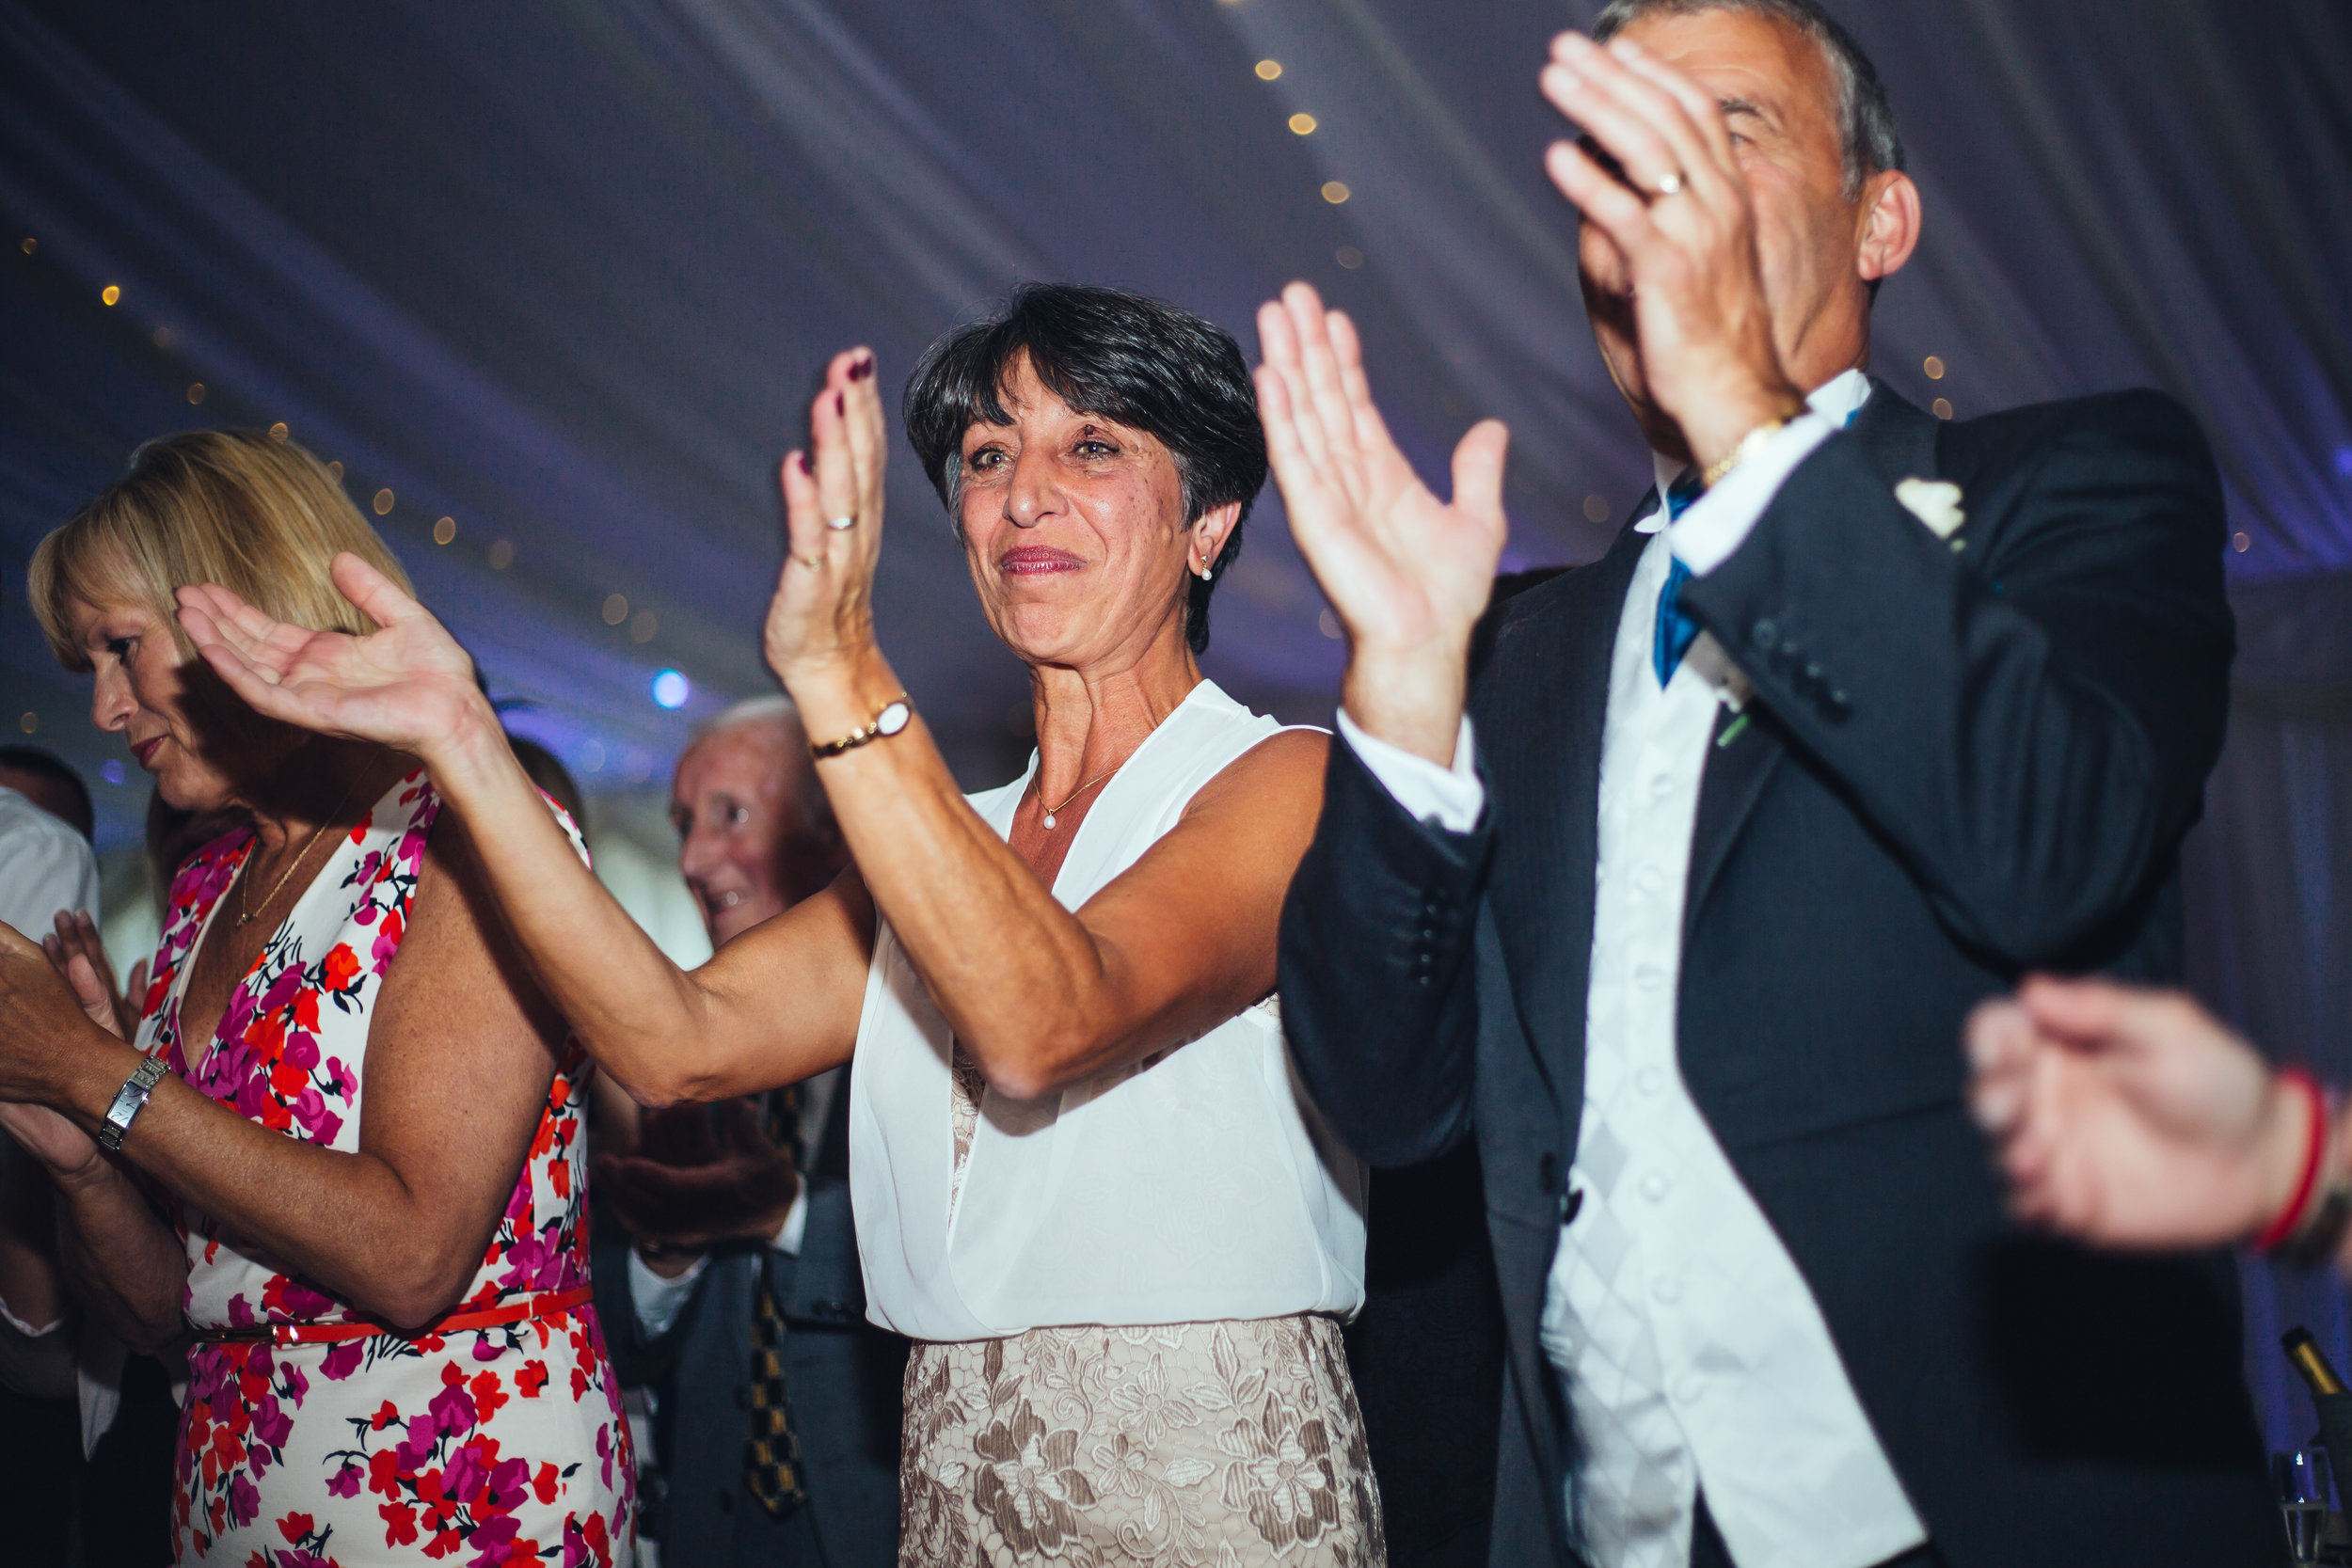 Guests dancing at Wrea Green Wedding